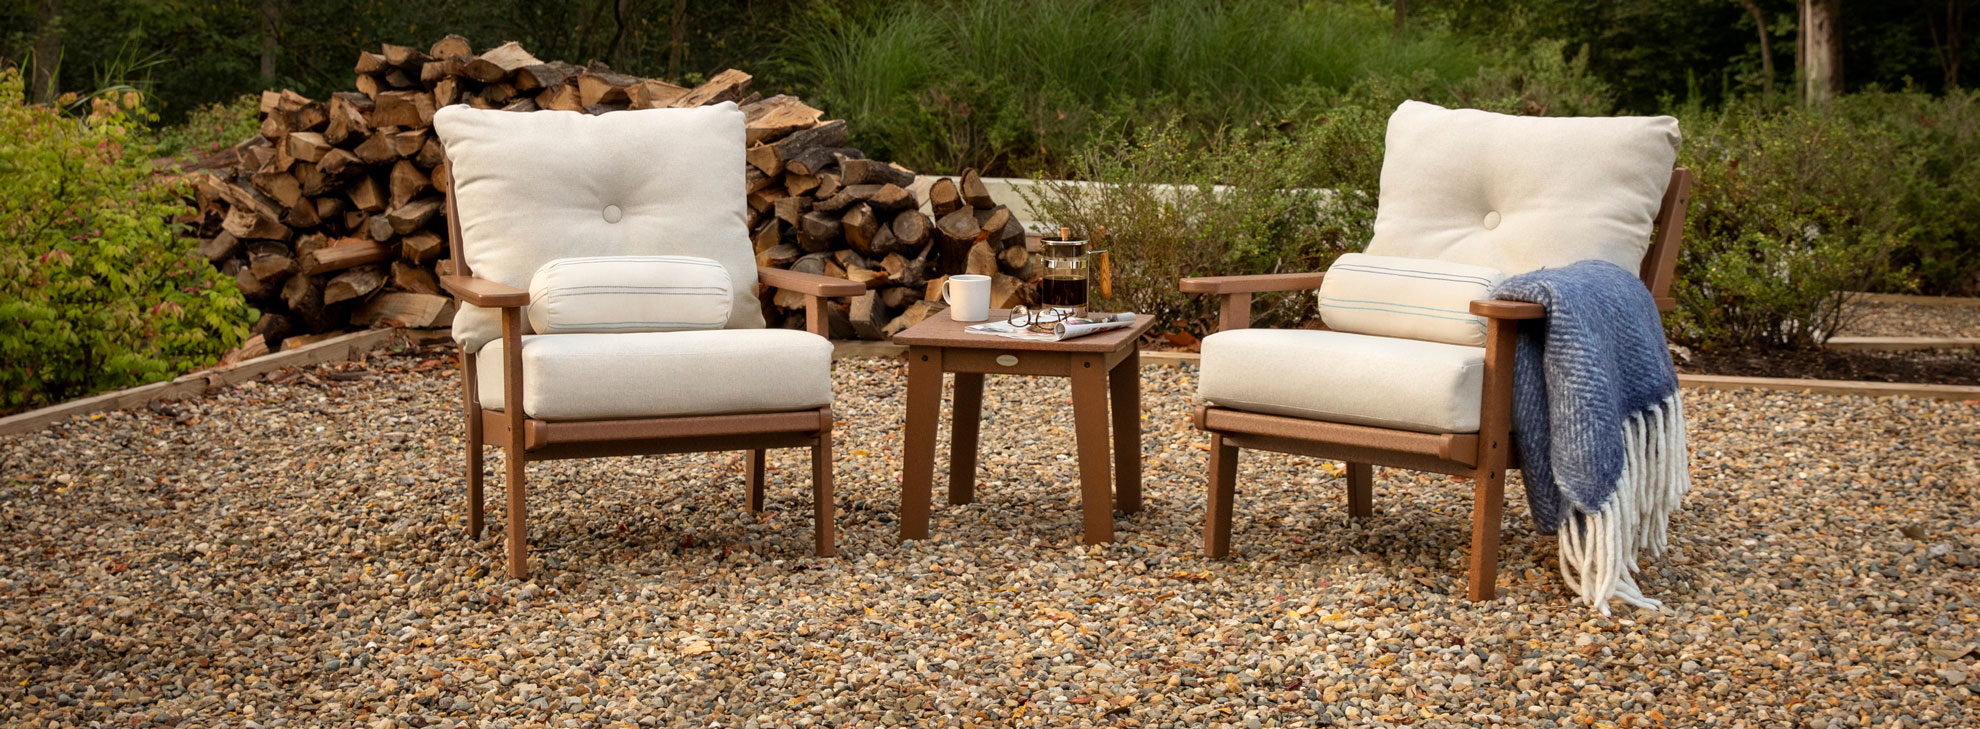 Outdoor Lounge Space Under $1500